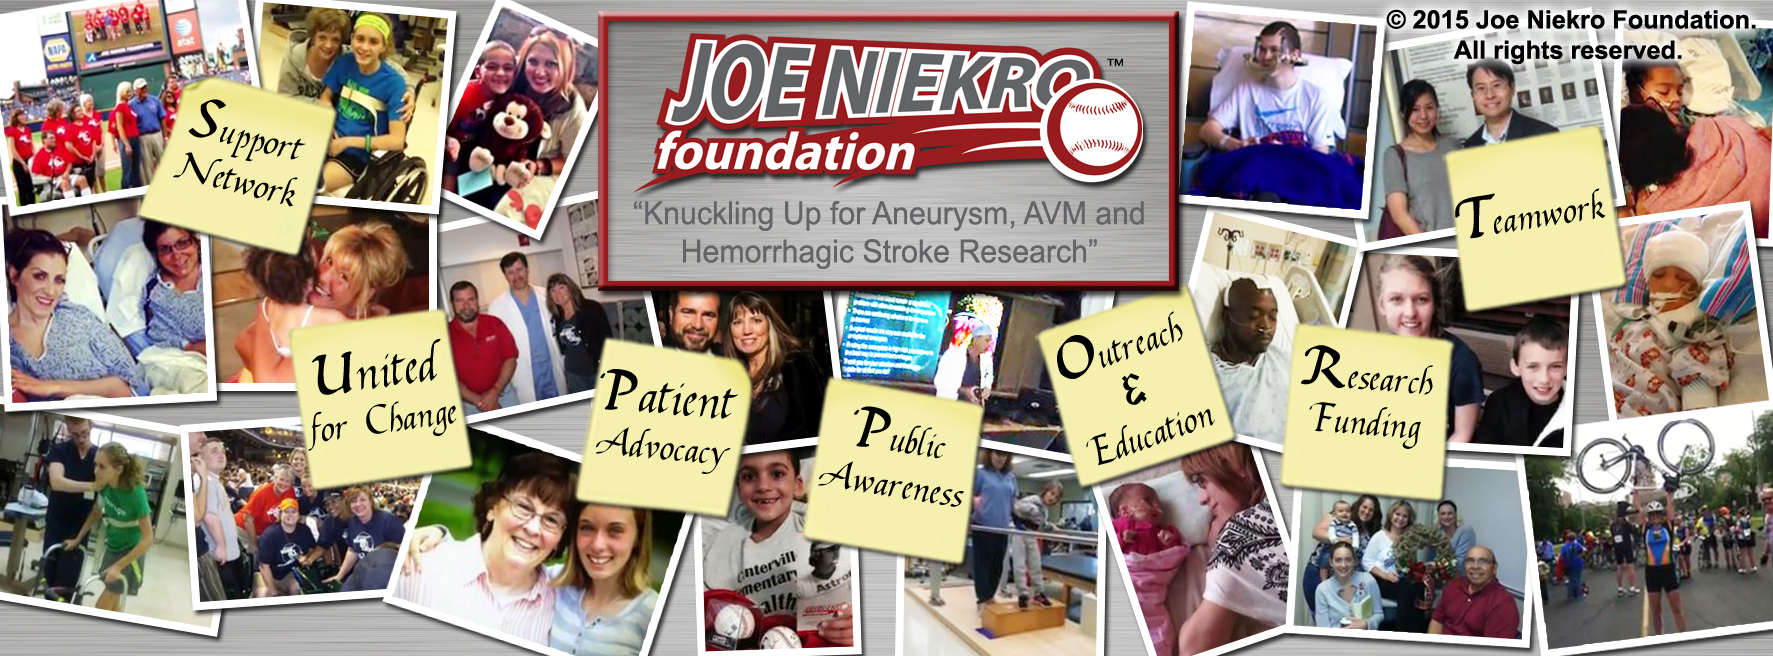 http://www.joeniekrofoundation.com/home-billboards/2631/